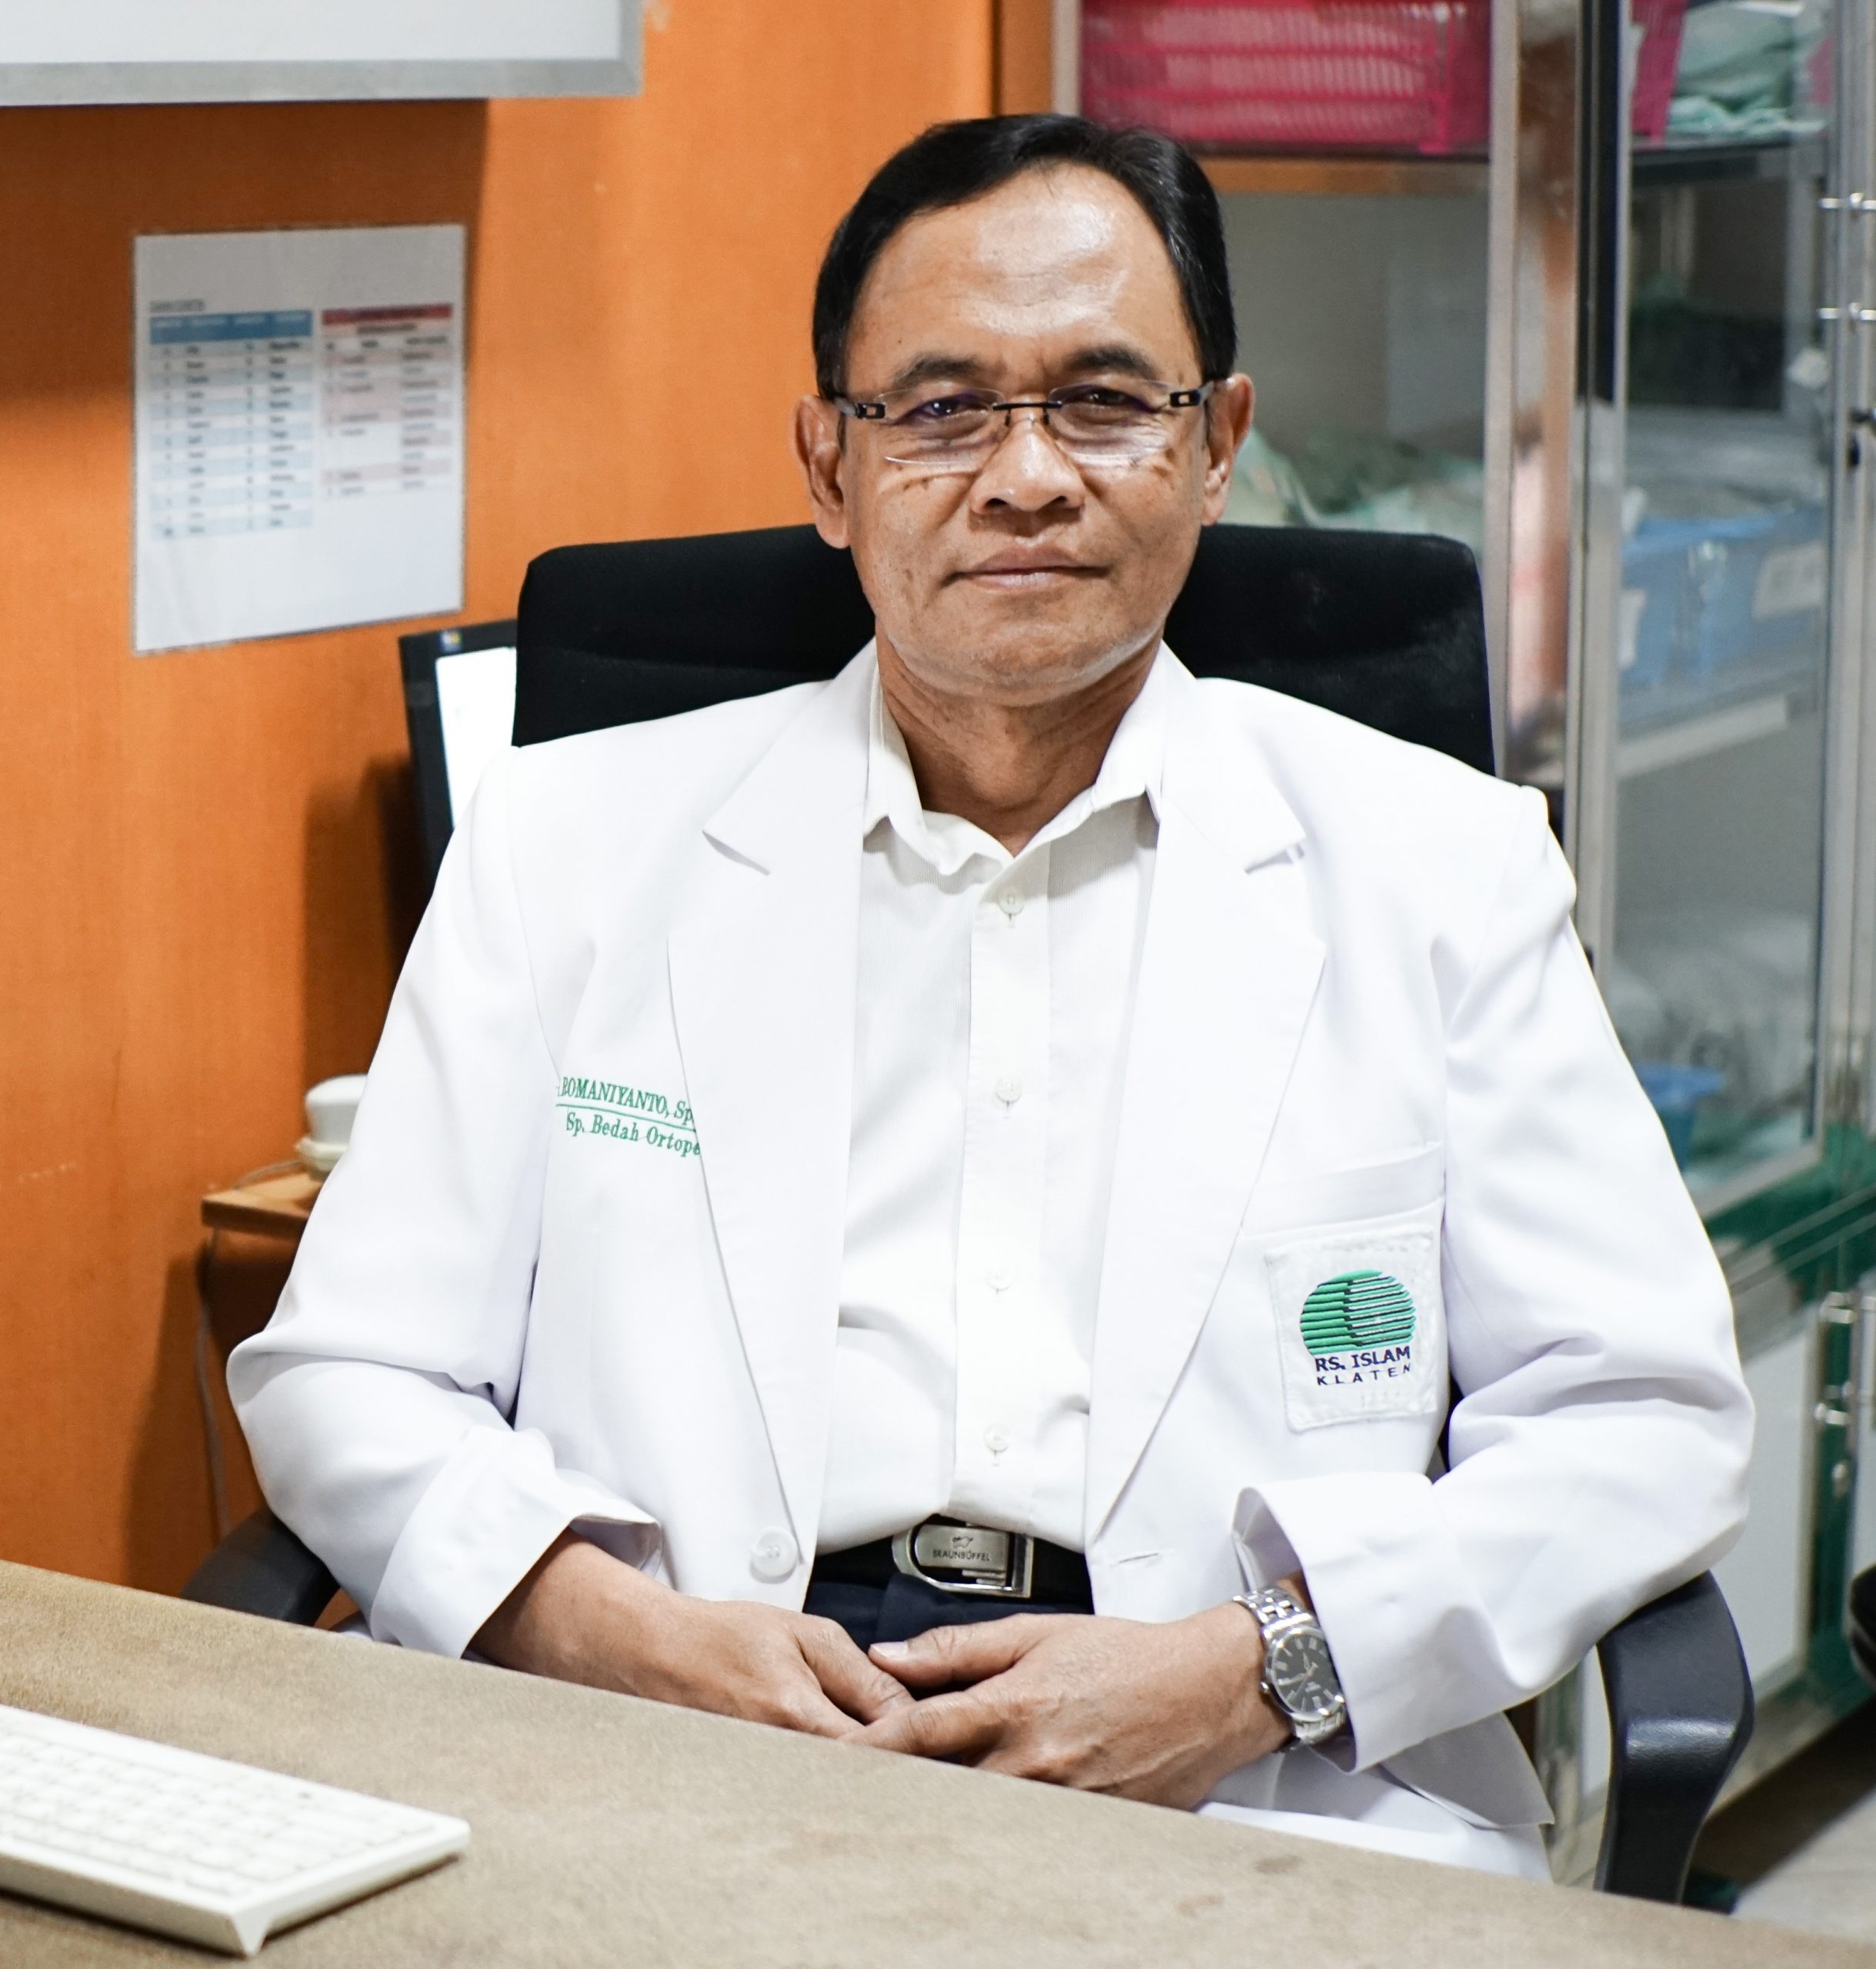 dr. H. Romaniyanto, Sp. BO, Spine (K)